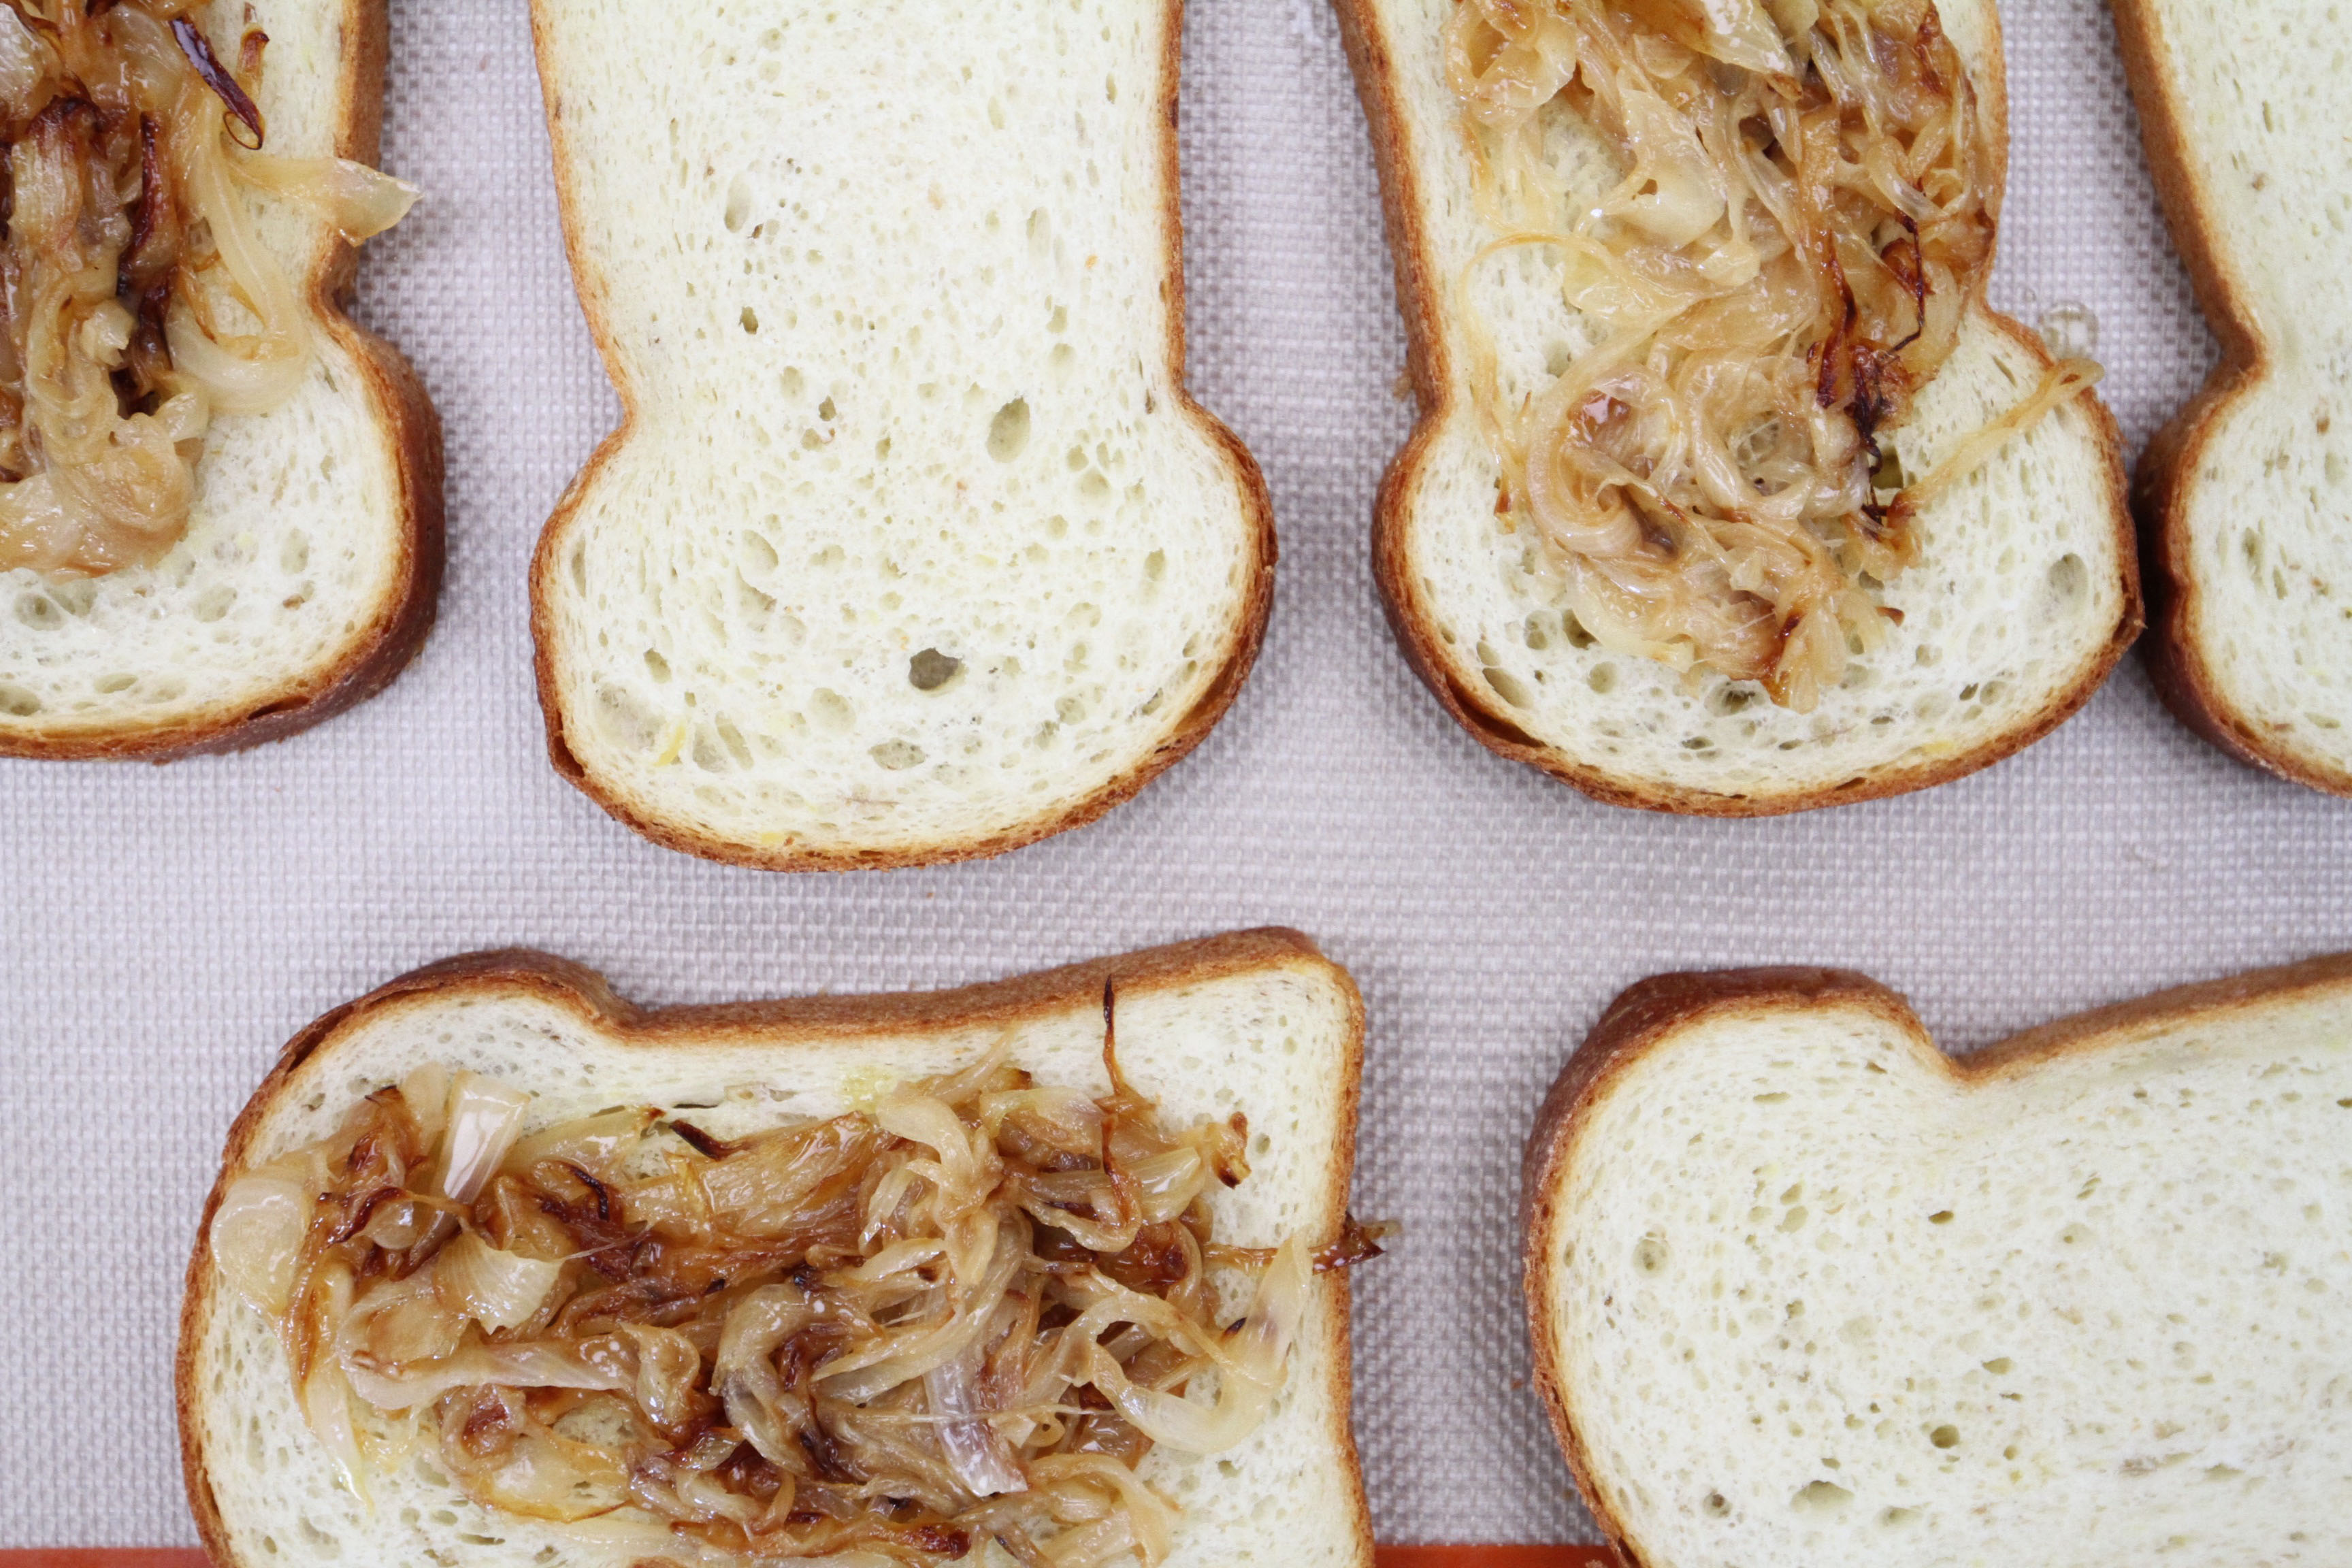 caramelized-onions-on-toasted-bread